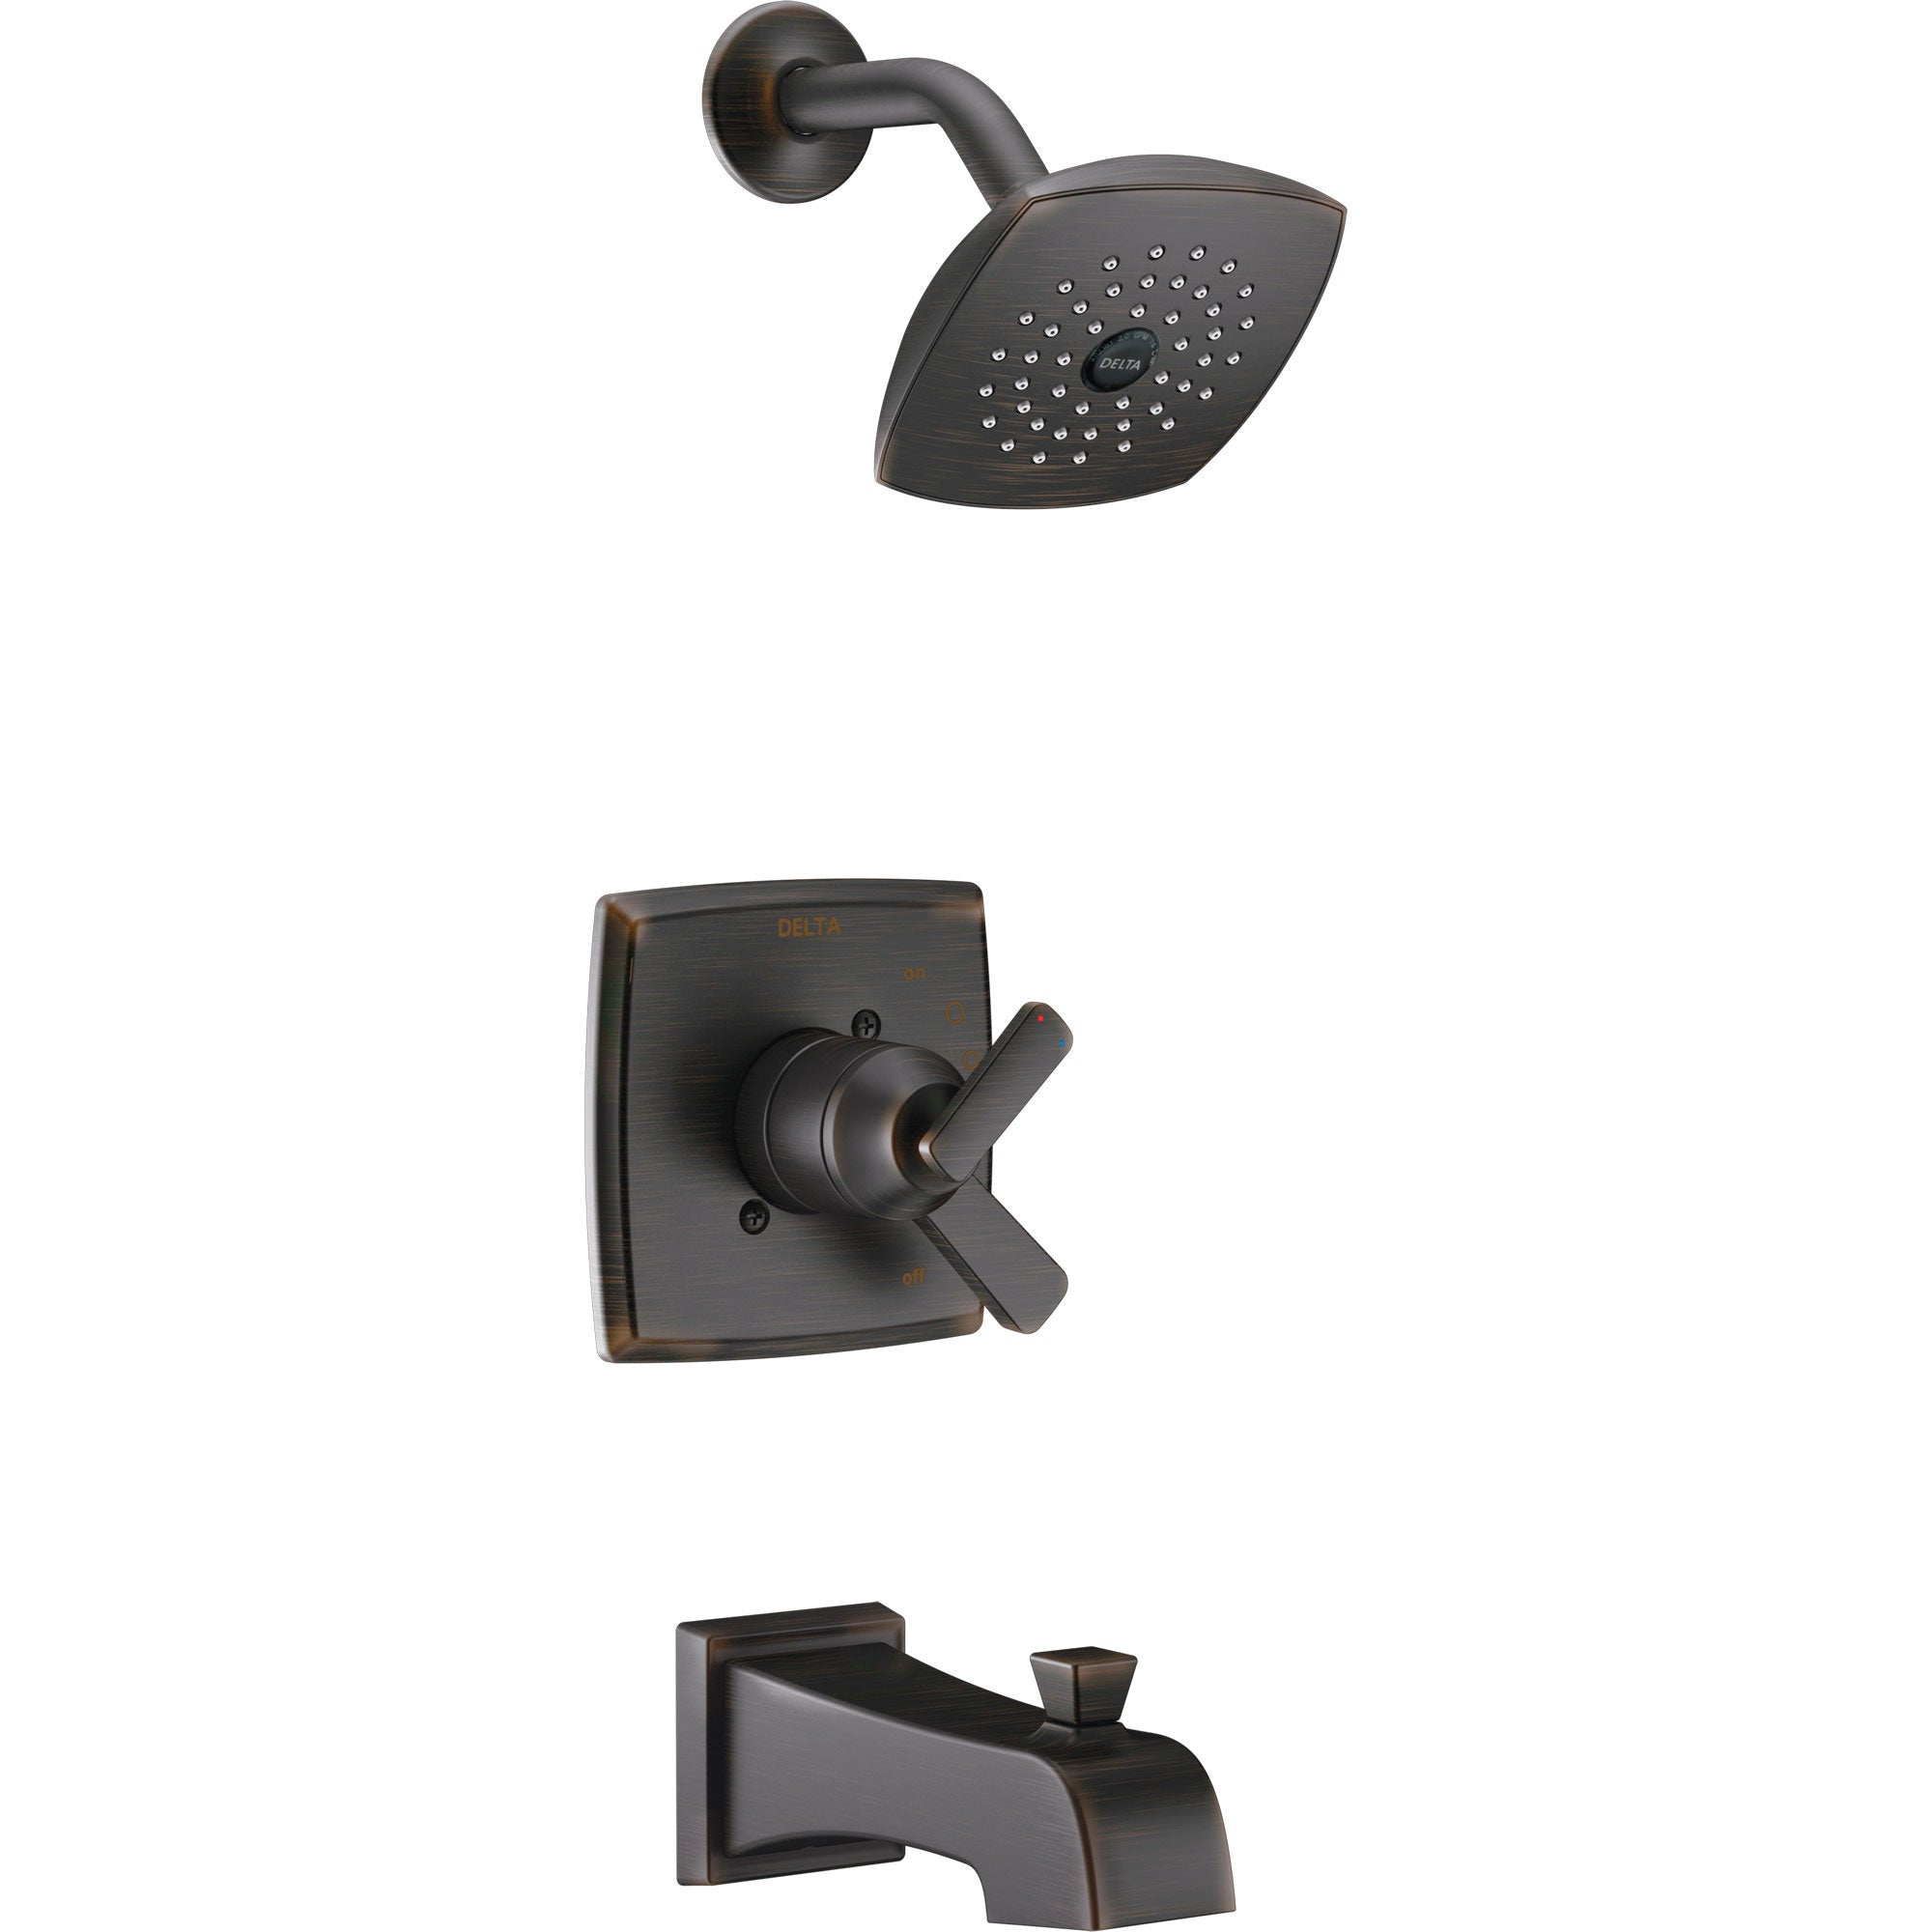 Delta Ashlyn Venetian Bronze Monitor 17 Series Tub and Shower Combo Faucet with Dual Temperature and Pressure Control INCLUDES Rough-in Valve with Stops D1121V